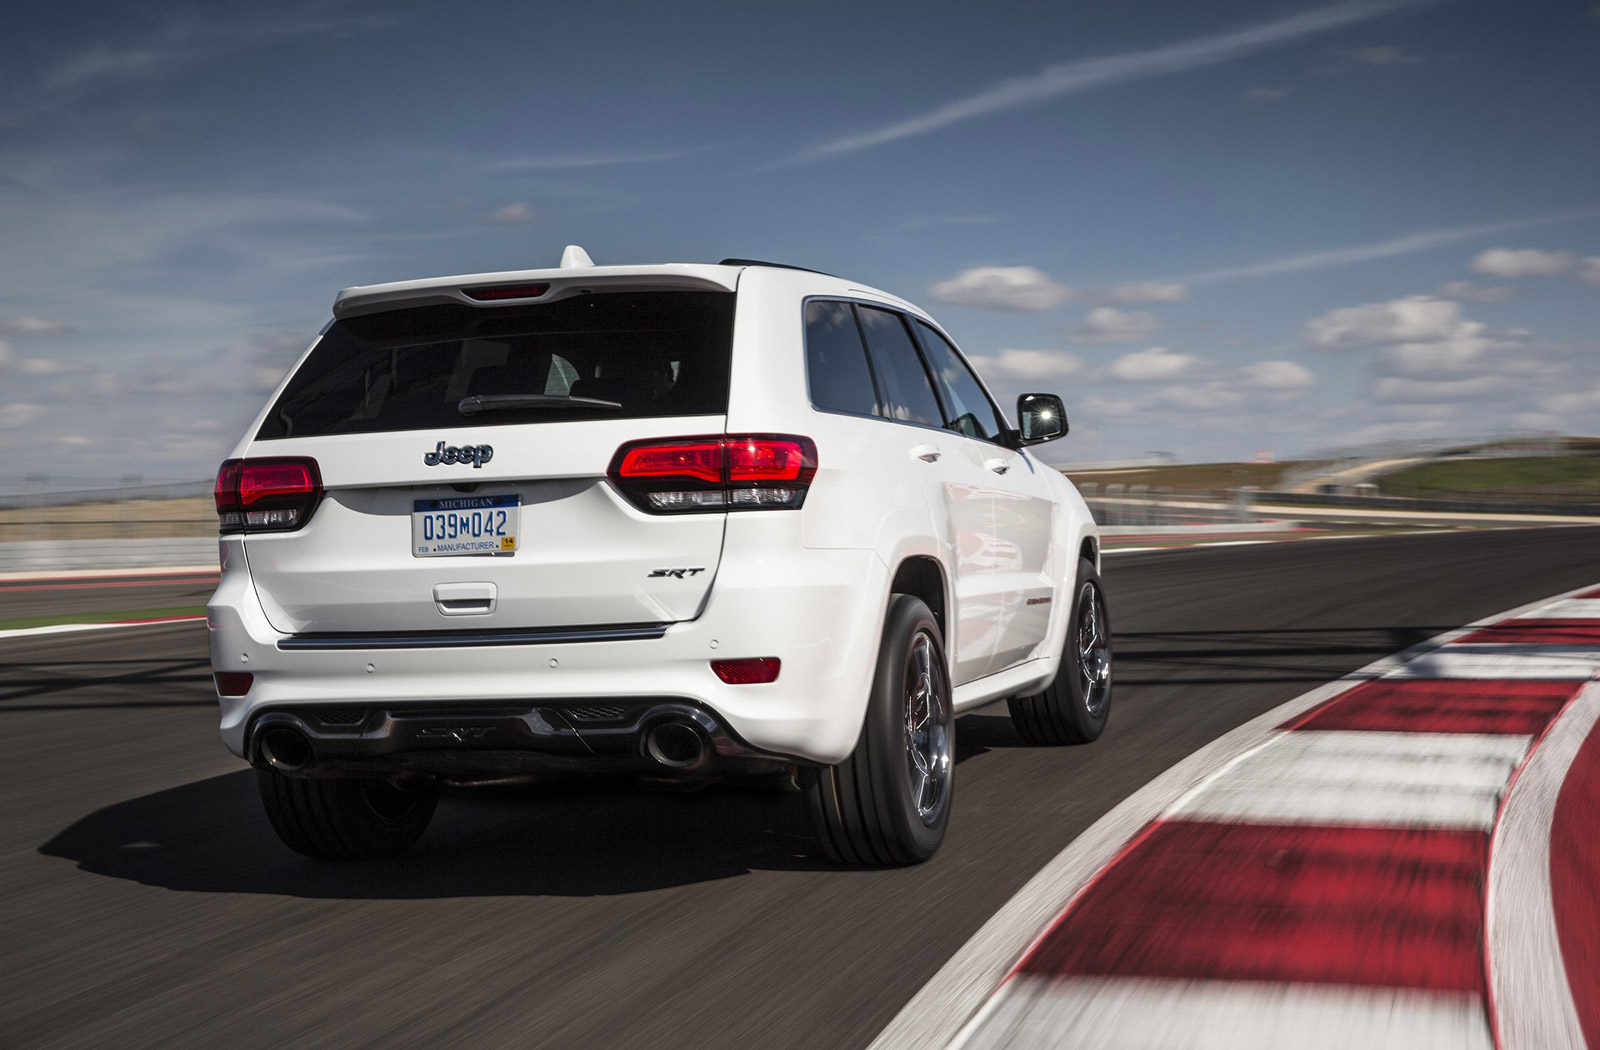 jeep grand cherokee trackhawk: 0-60 in 2.7 seconds, $79,999?